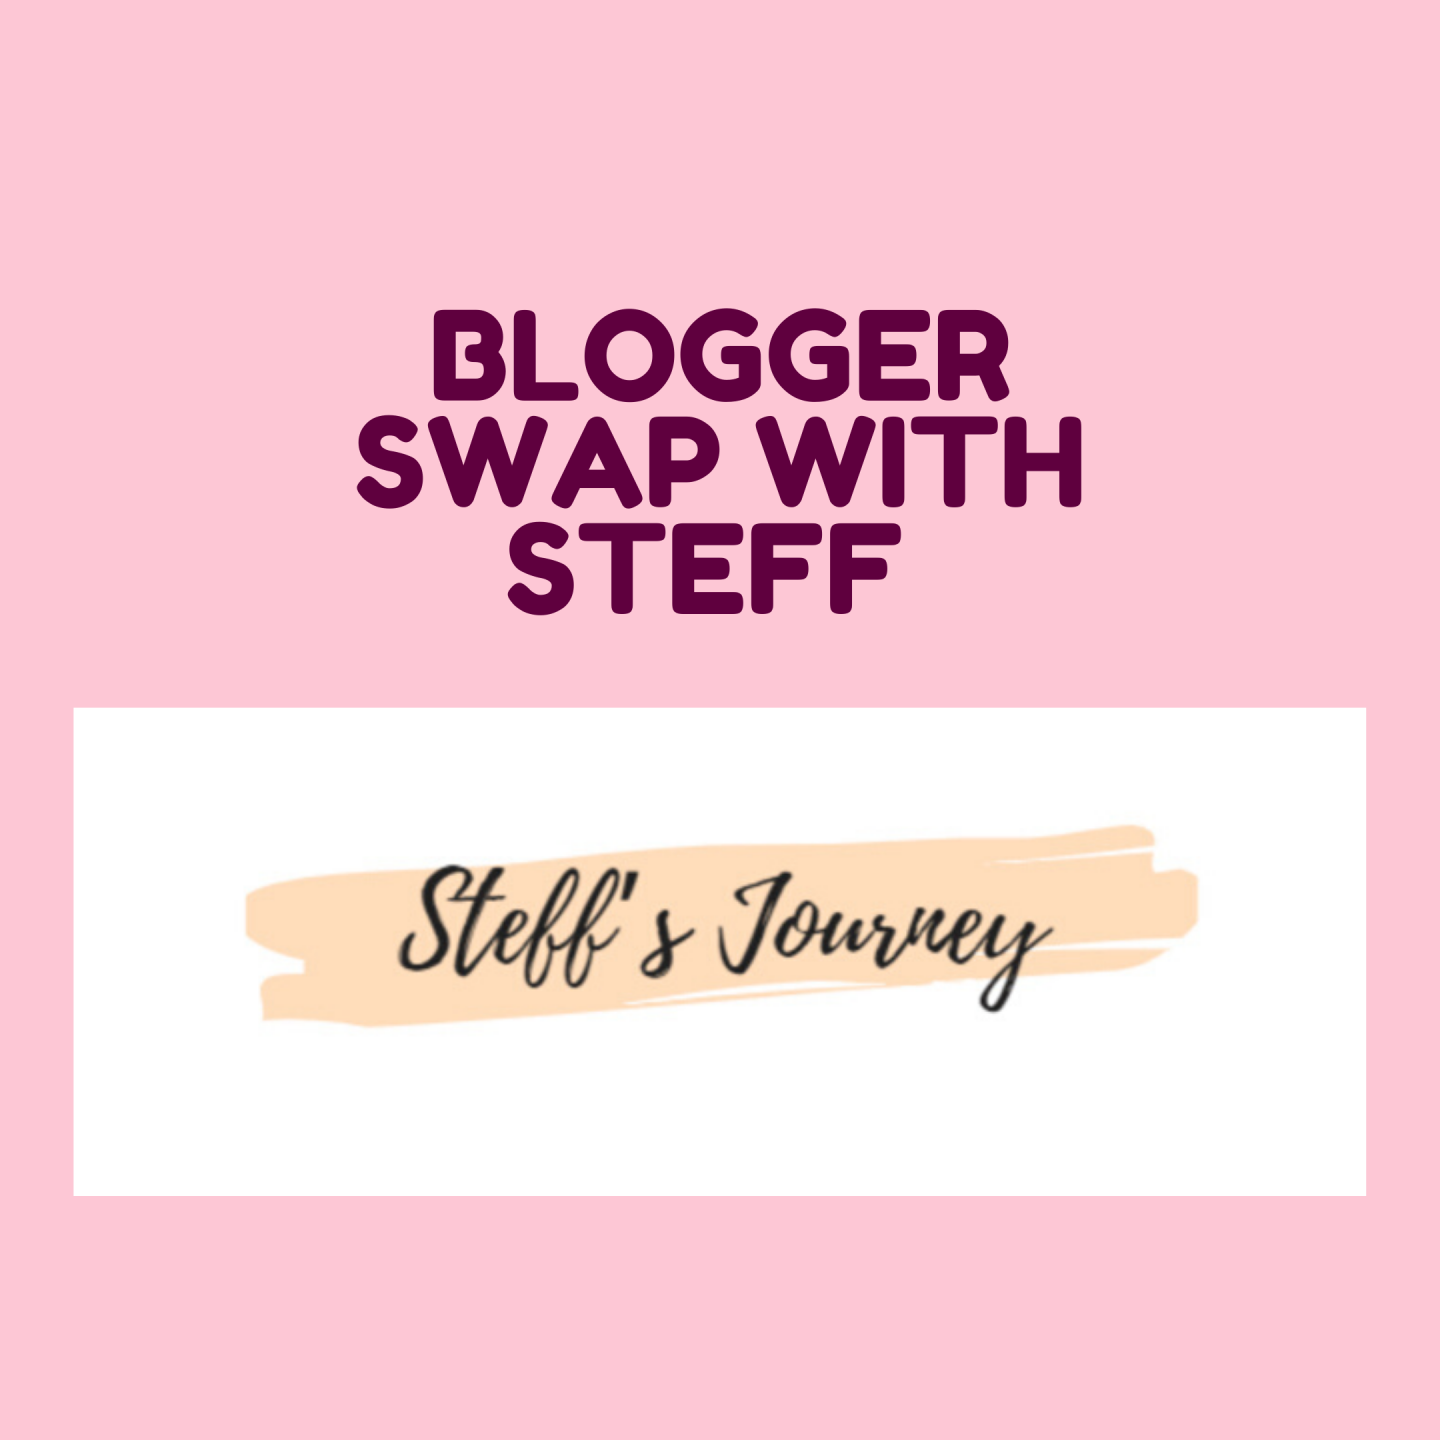 Blogger swap with Steff